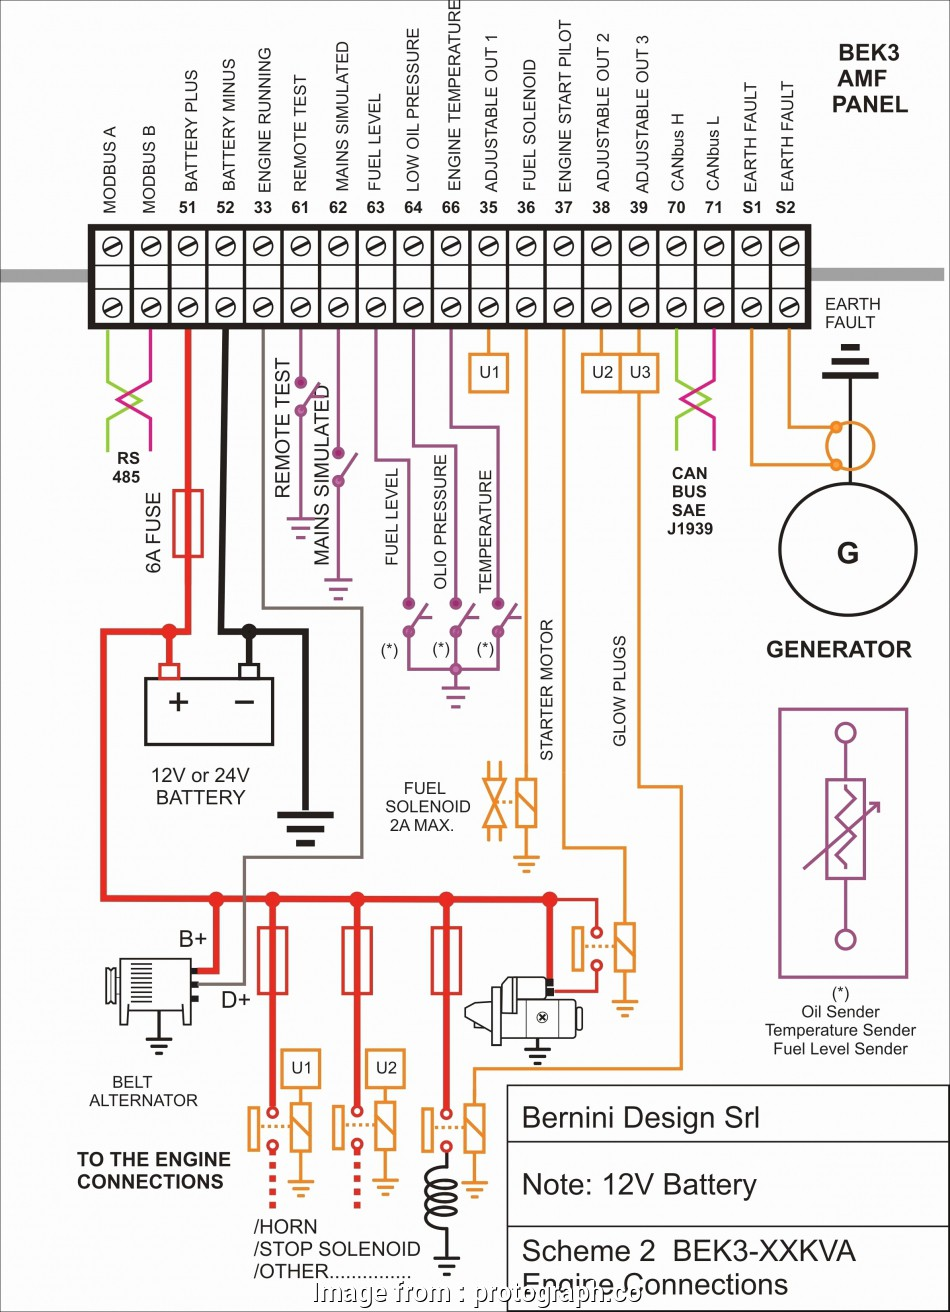 home electrical wiring techniques mopar wiring diagram lovely xf wiring diagram wire center rh crissnetonline com 20 Popular Home Electrical Wiring Techniques Galleries